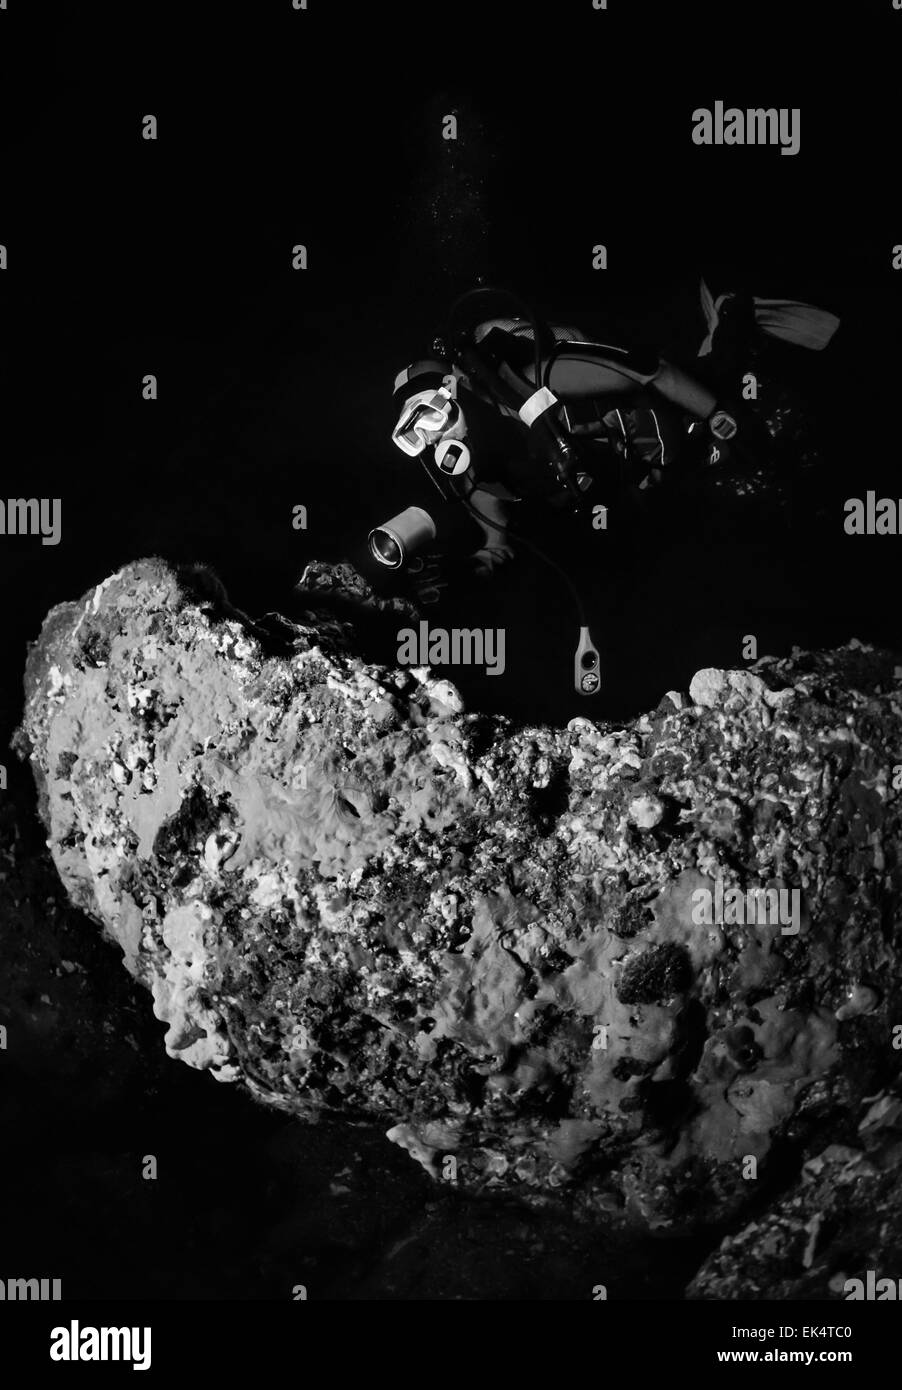 Montenegro, Adriatic Sea, U.W. photo, cave diving, diver and red sponges on a rock - FILM SCAN - Stock Image